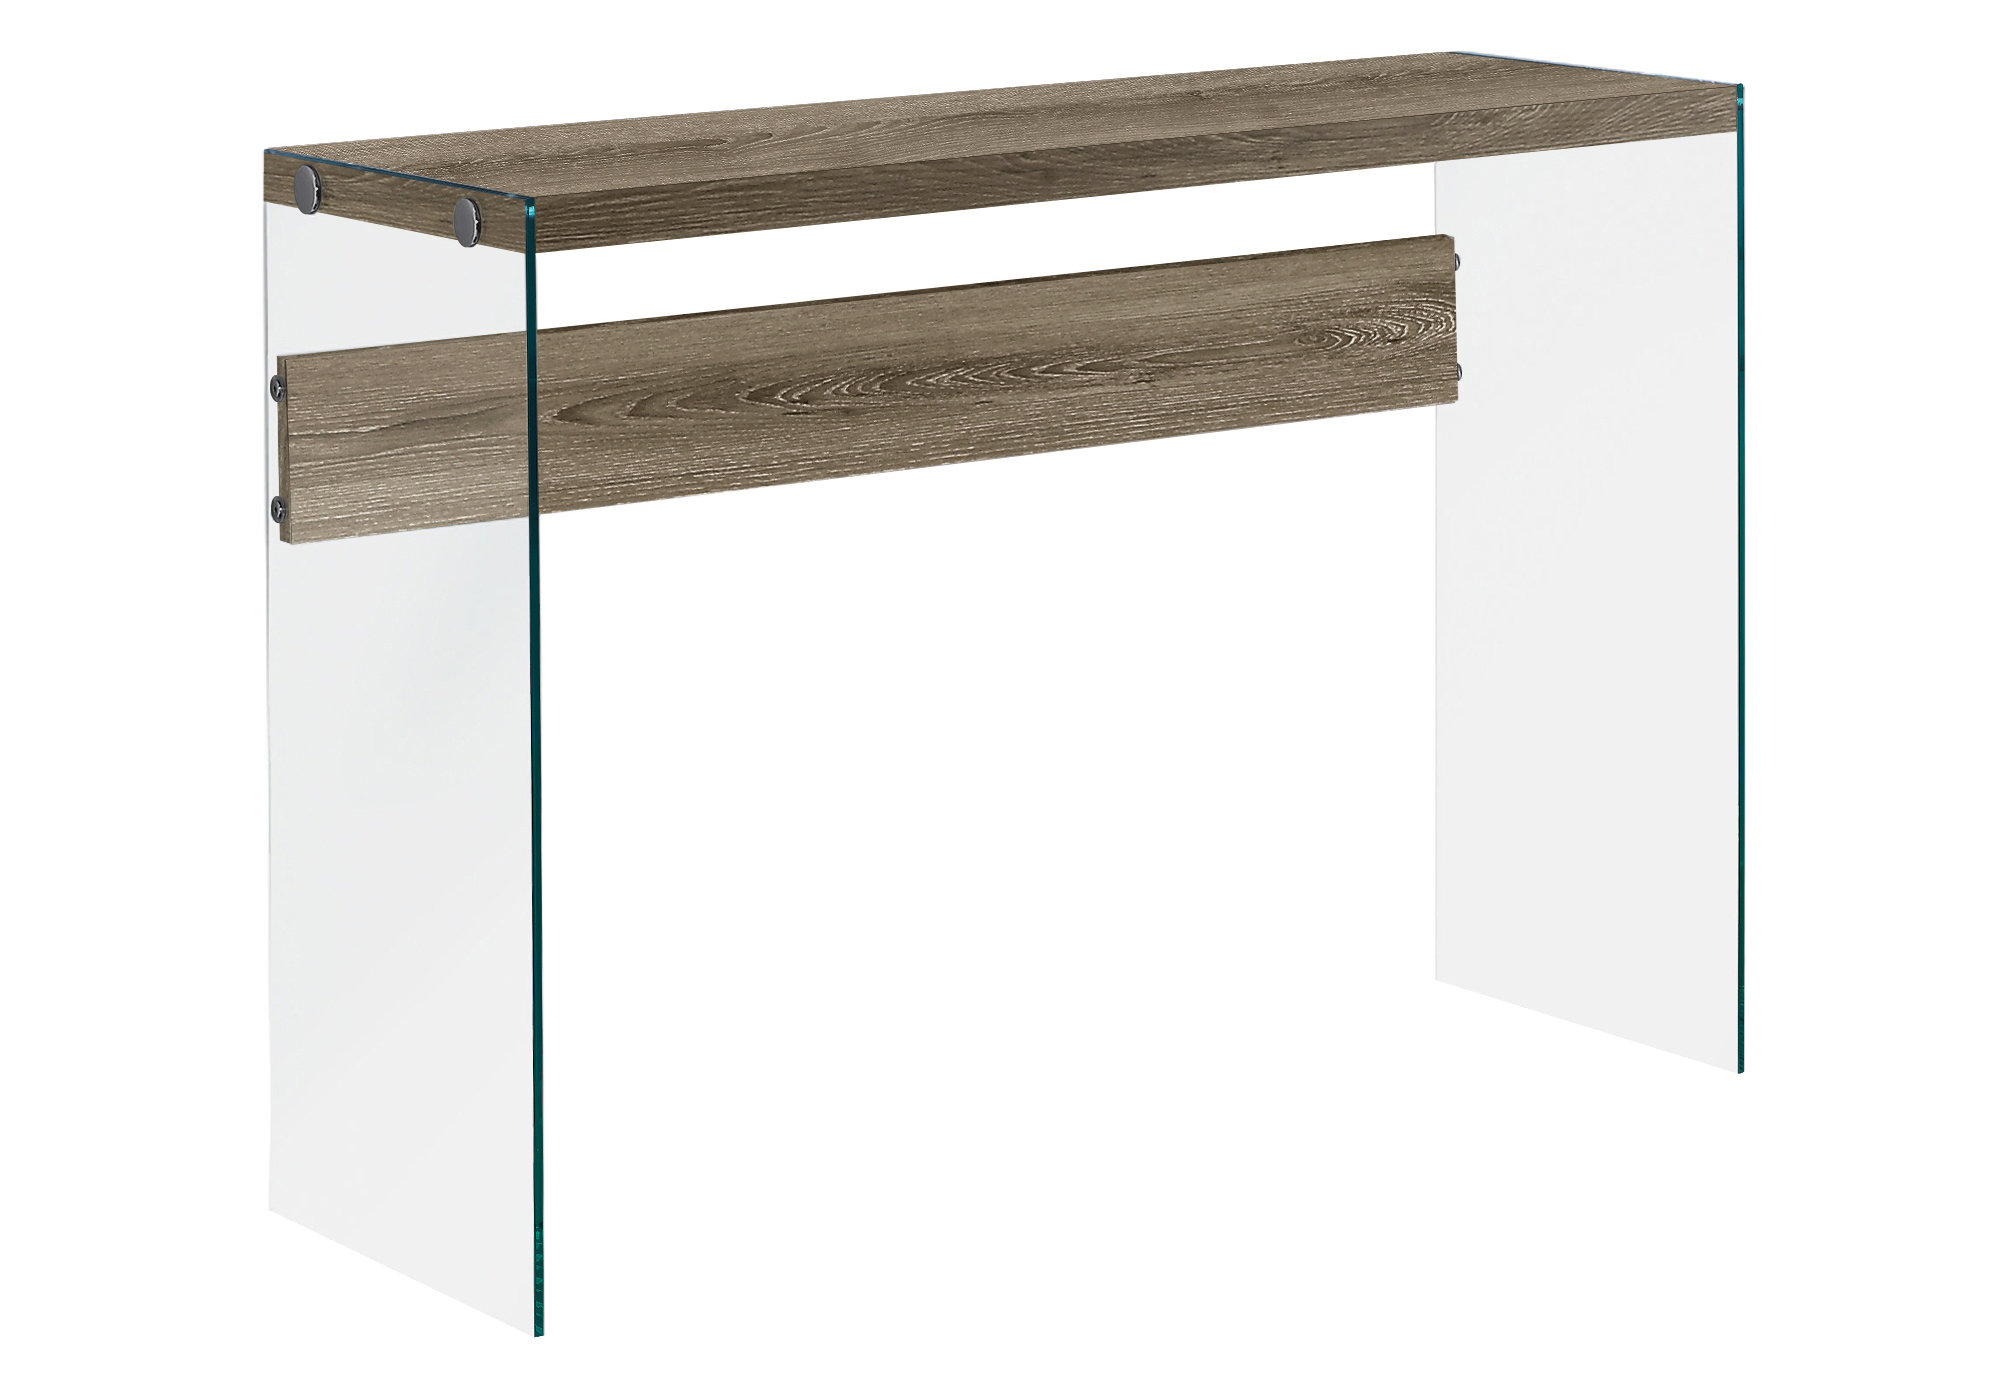 "ACCENT TABLE - 44""L / DARK TAUPE / TEMPERED GLASS"